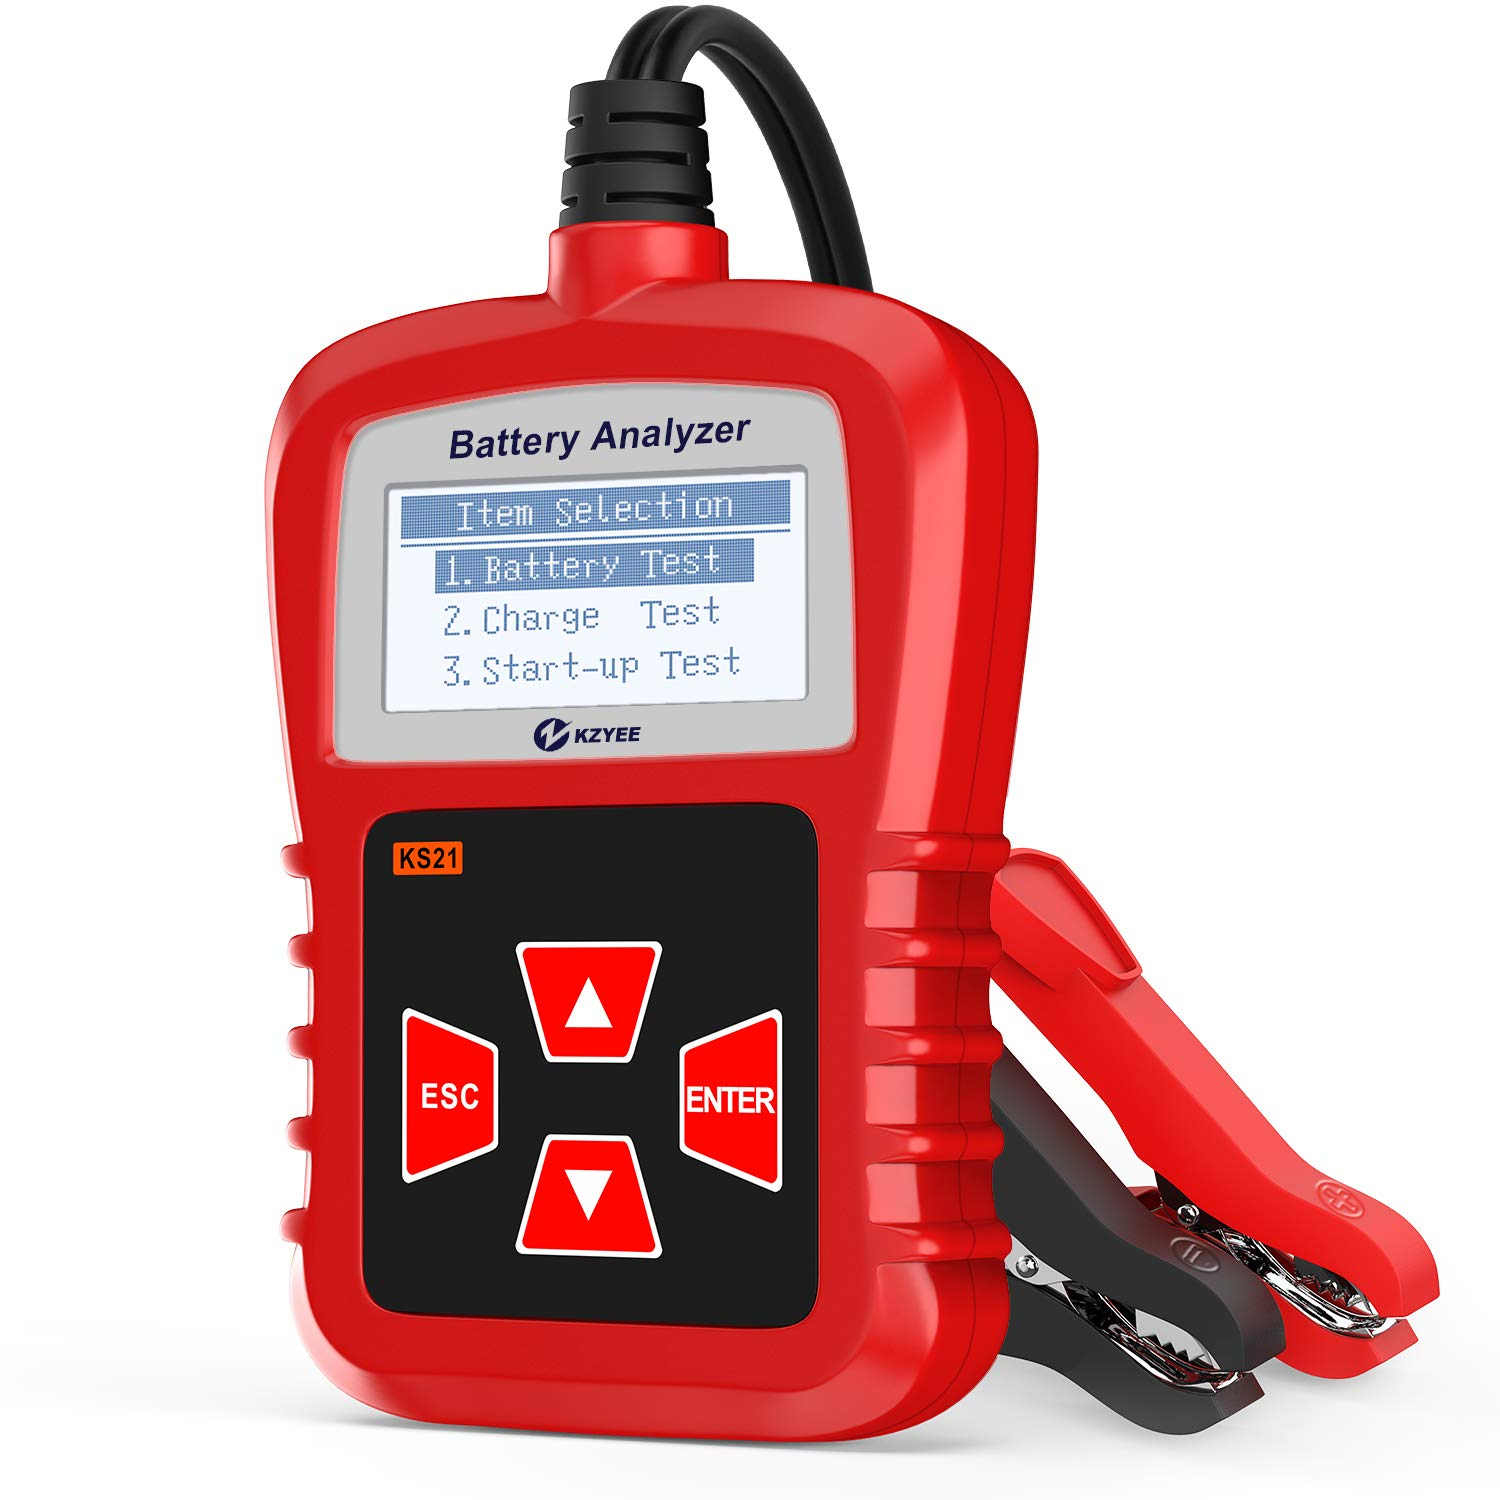 Kzyee KS21 Car Battery Tester, Automotive 100-1700 CCA 12V Battery Load Tester Cranking and Charging System Diagnostic Tool Digital Battery Analyzer by Kzyee (Image #1)